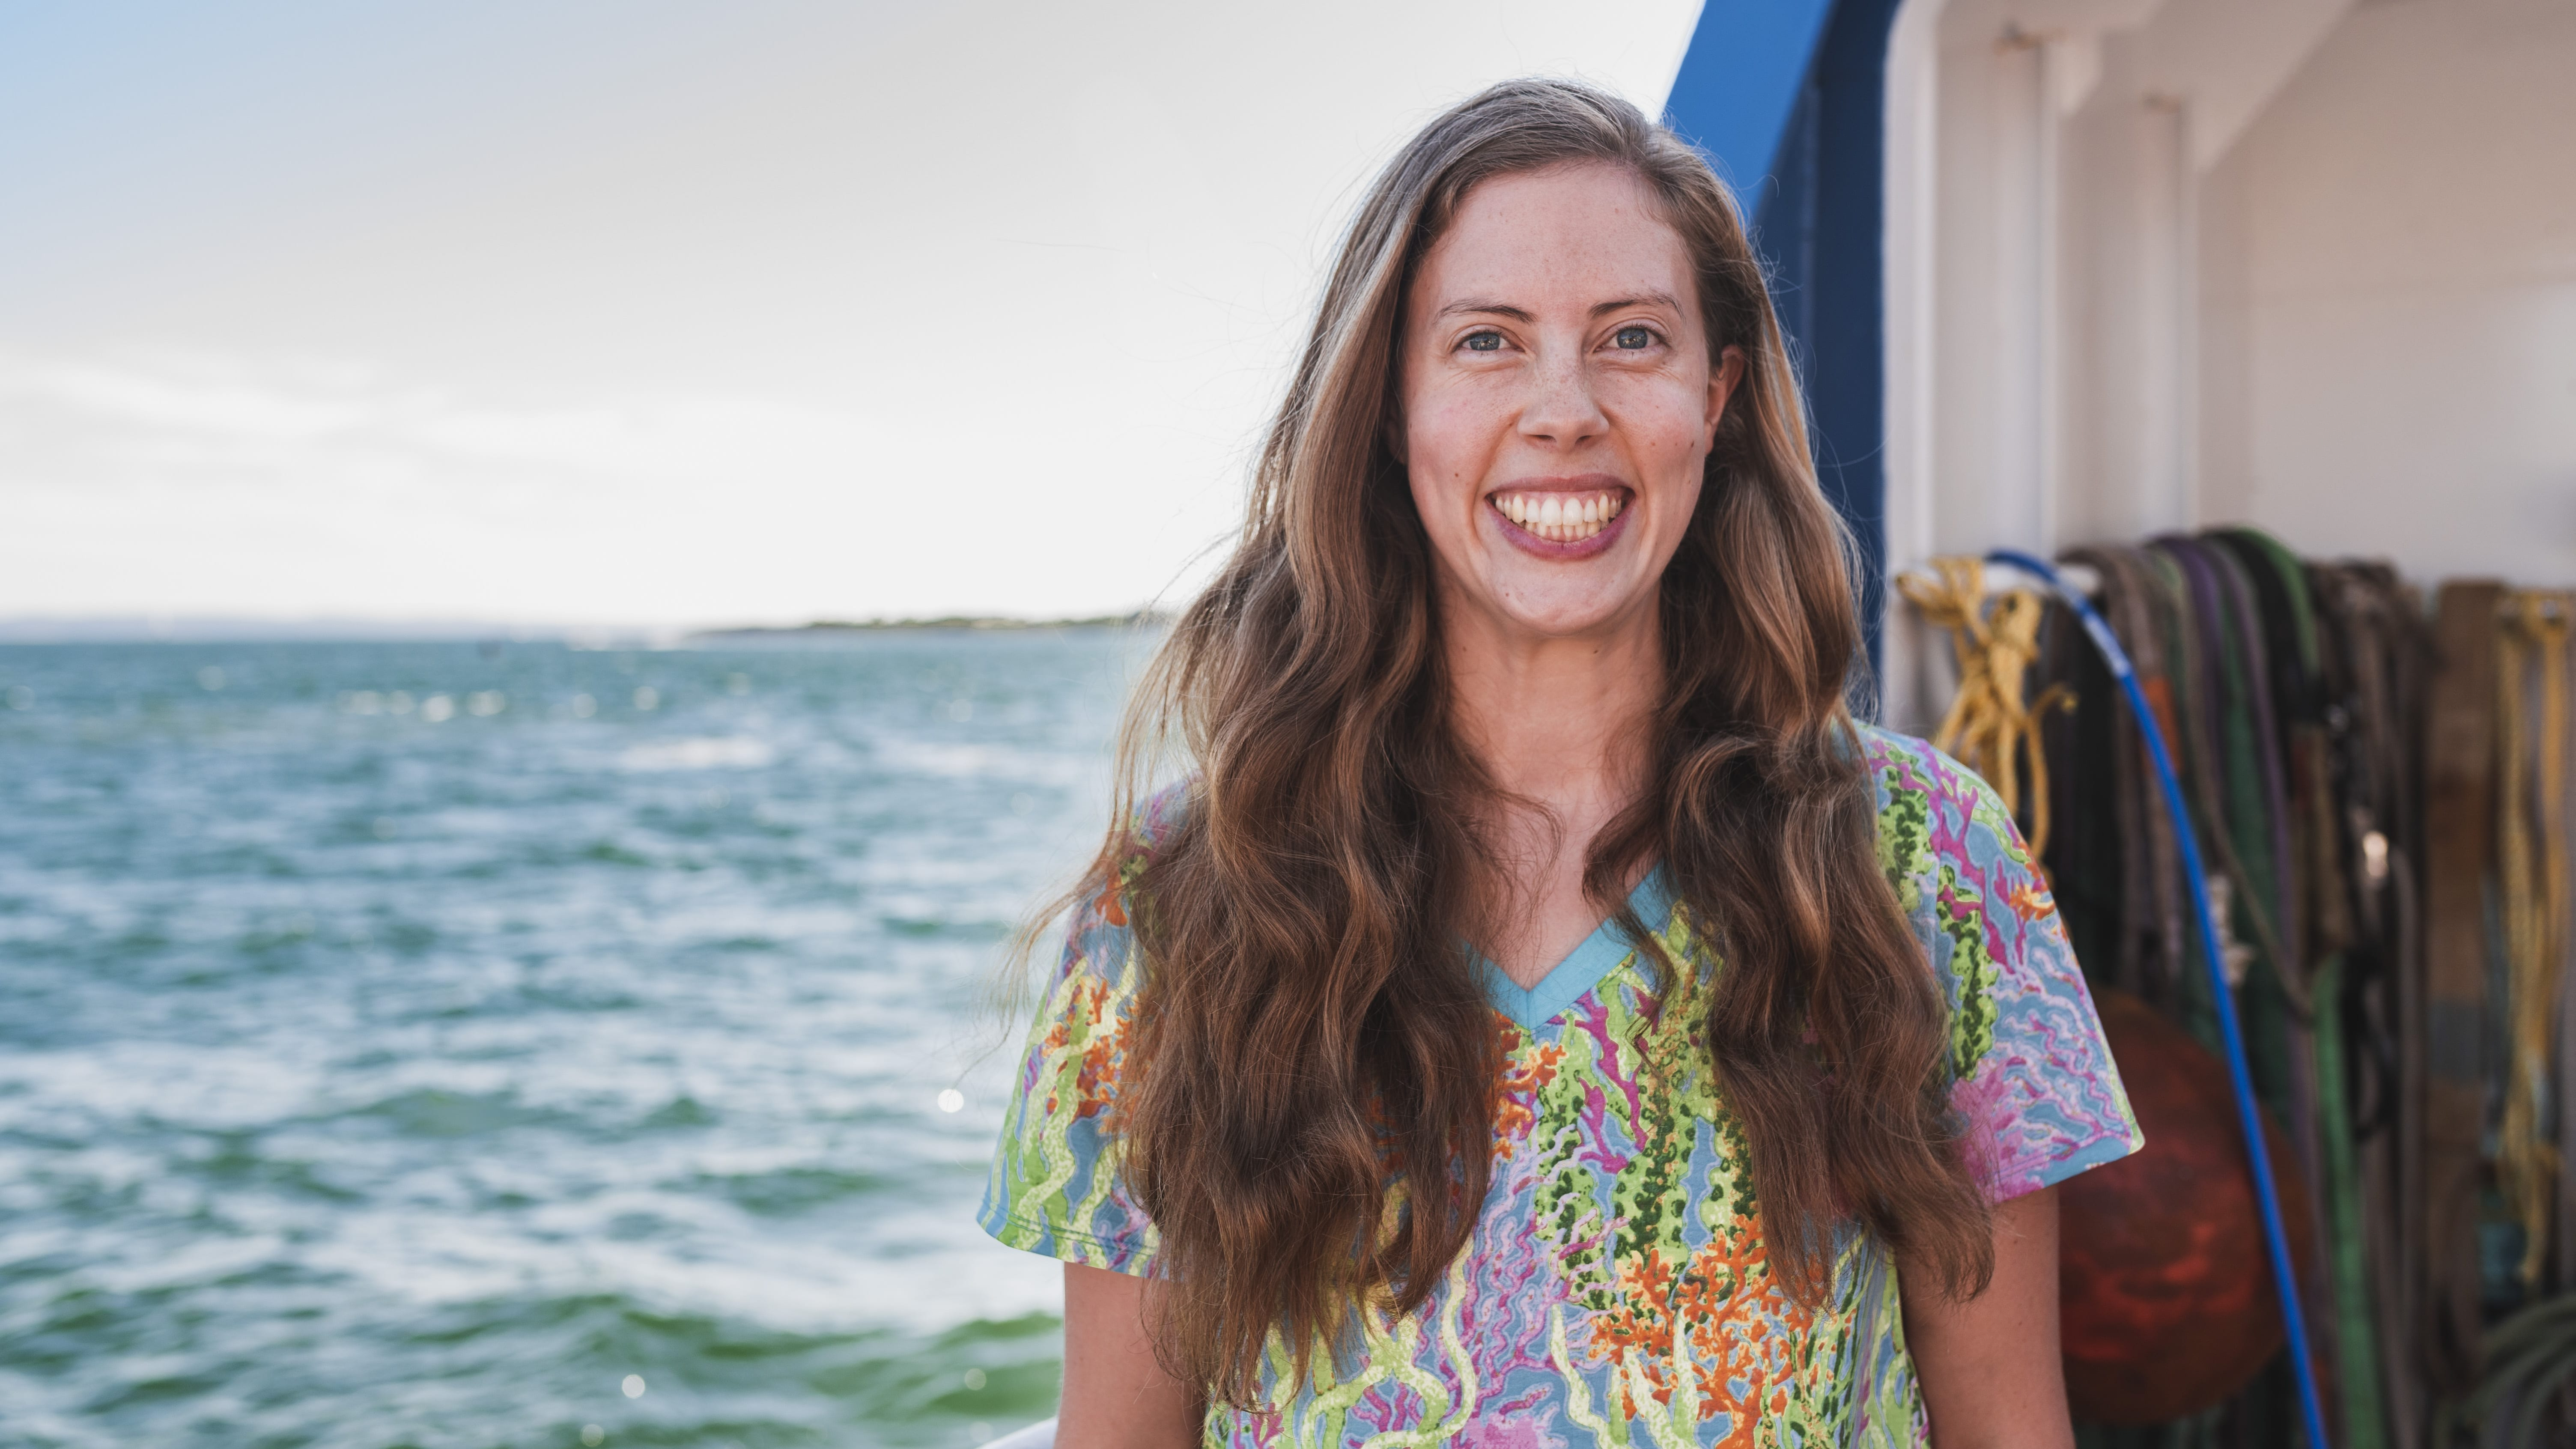 Kirstin Meyer-Kaiser poses for a quick photo before taking off on the R/V Connecticut to run several observations along Stellwagen Bank off the coast of Massachusetts. (Photo by Daniel Hentz | Woods Hole Oceanographic Institution)